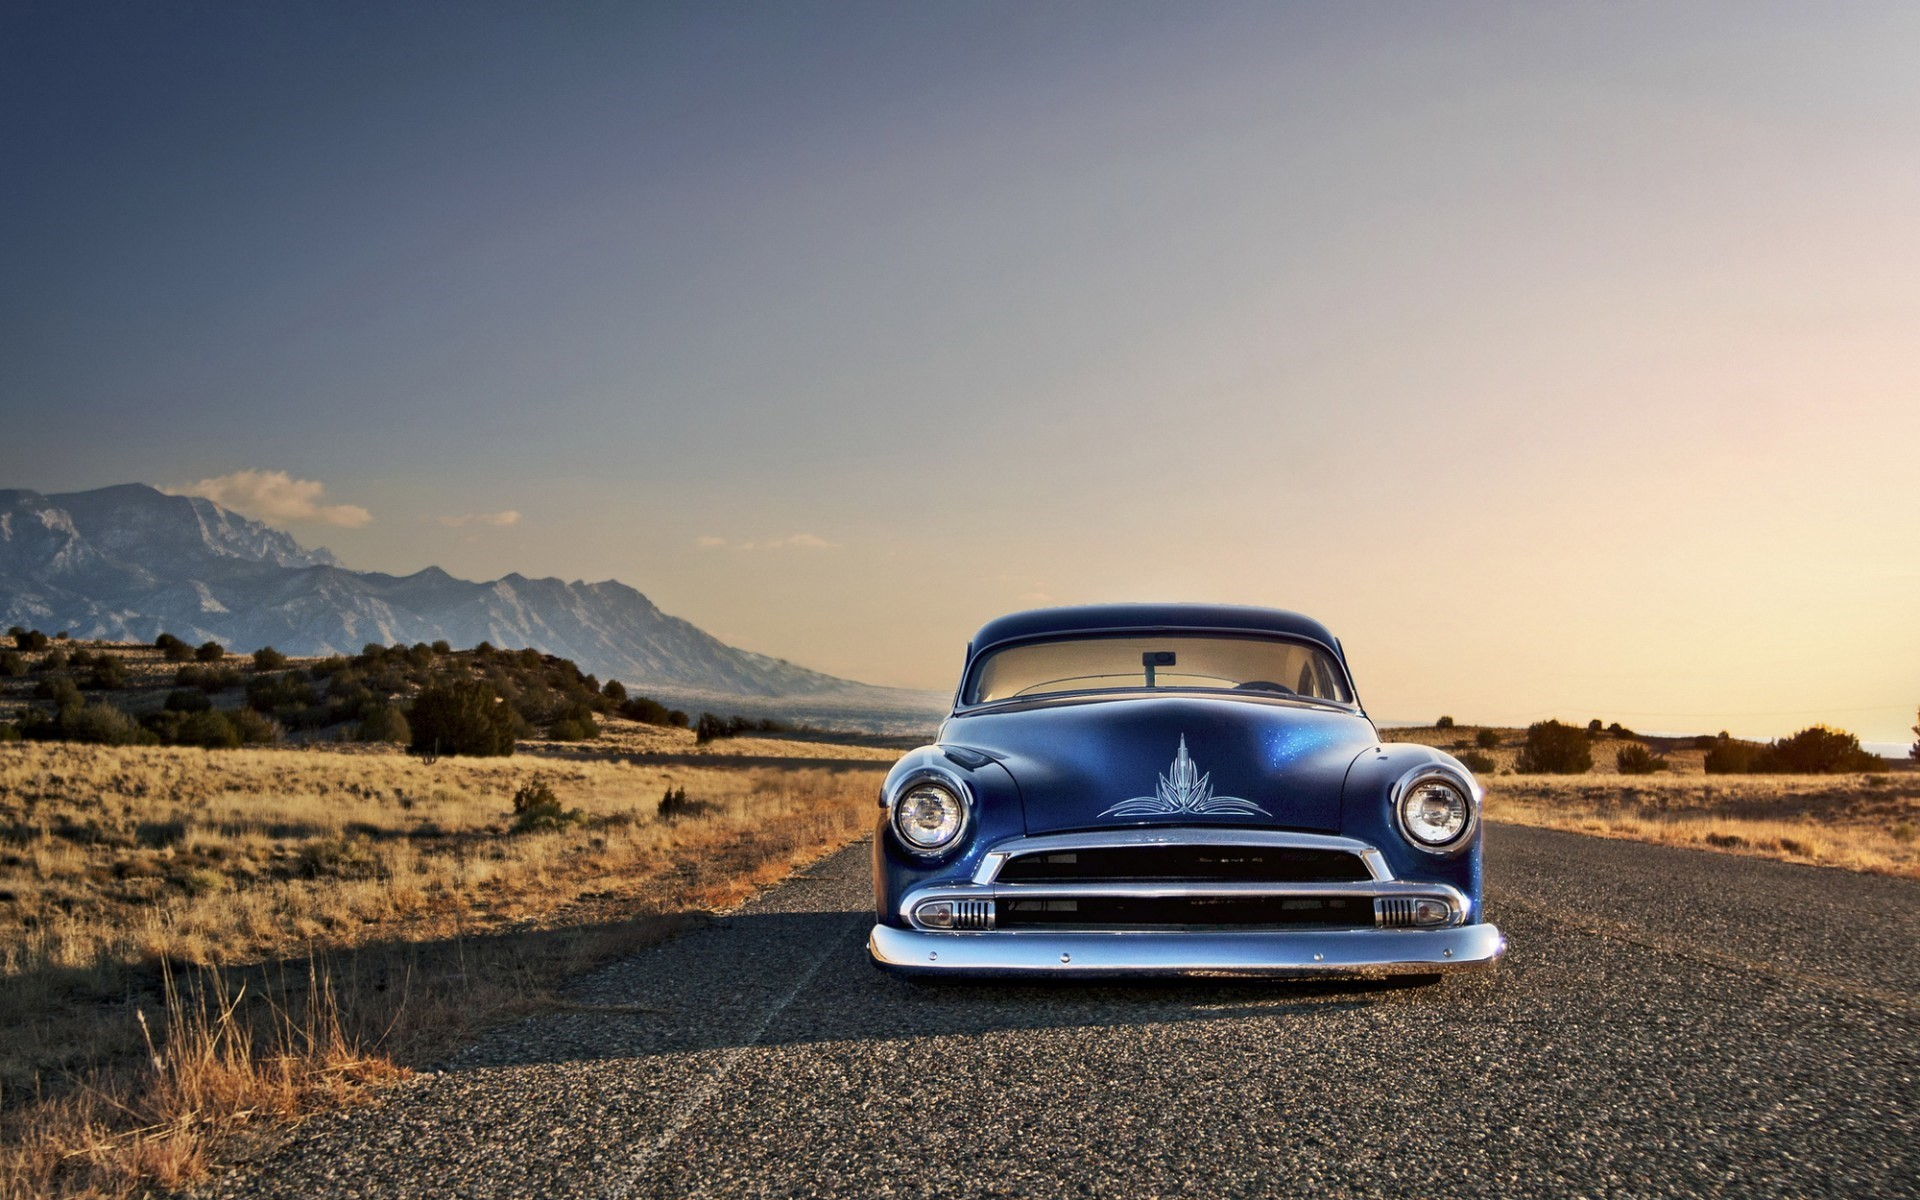 Hot Rod Chevrolet 1, Hd Cars, 4K Wallpapers, Images, Backgrounds, Photos And Pictures-5358